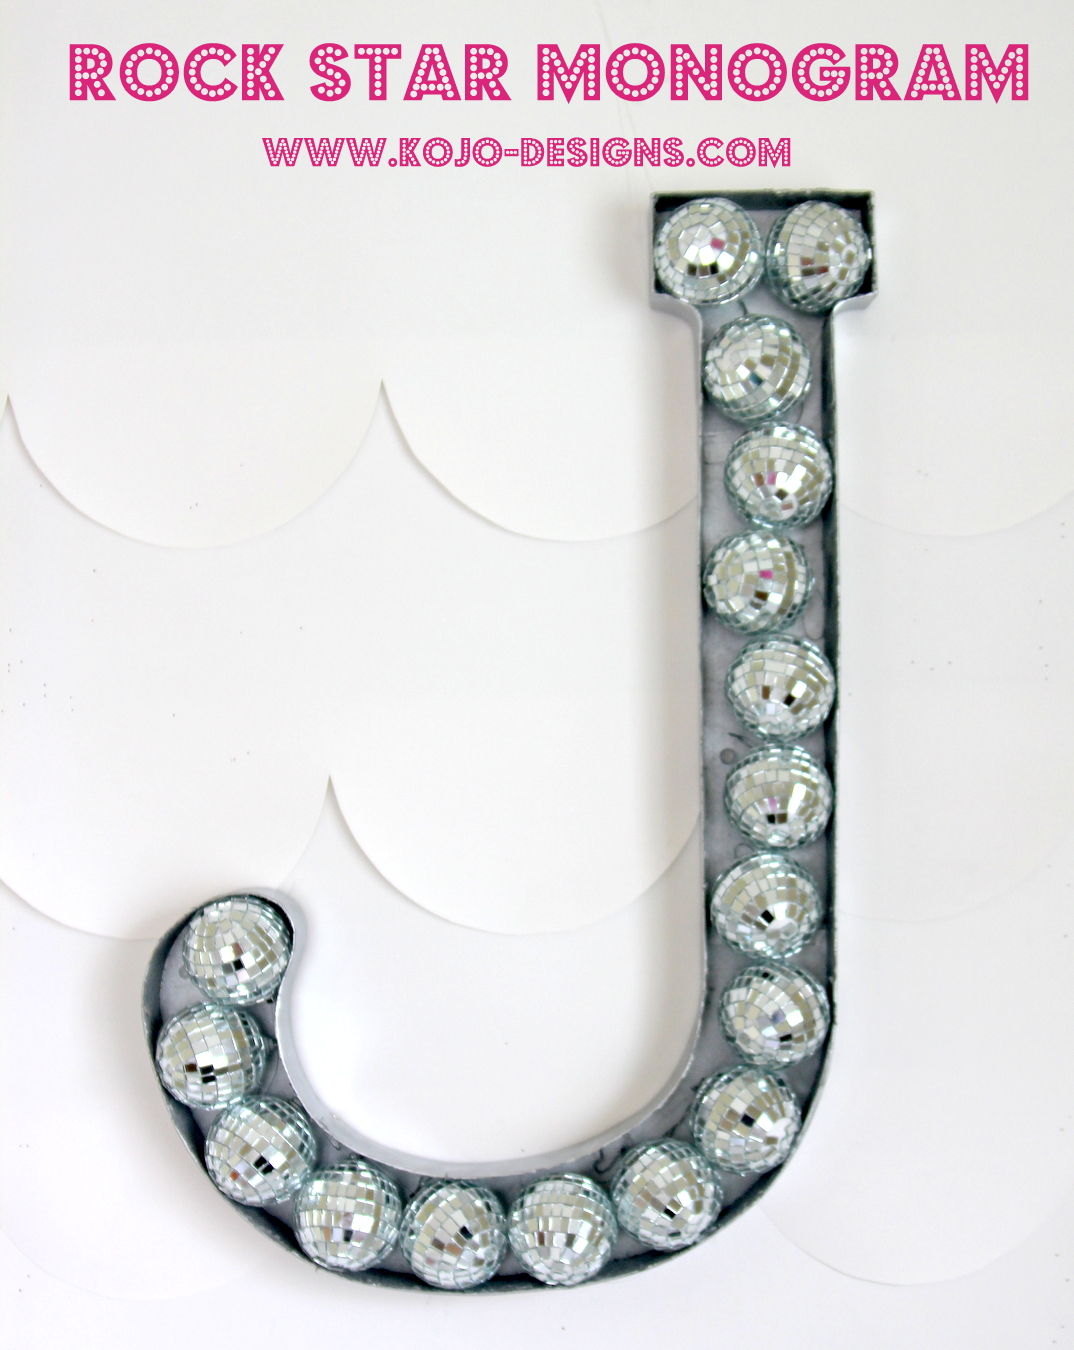 Need to add a bit of rock star to a room (or a party)??? This disco ball filled monogram is the perfect addition!